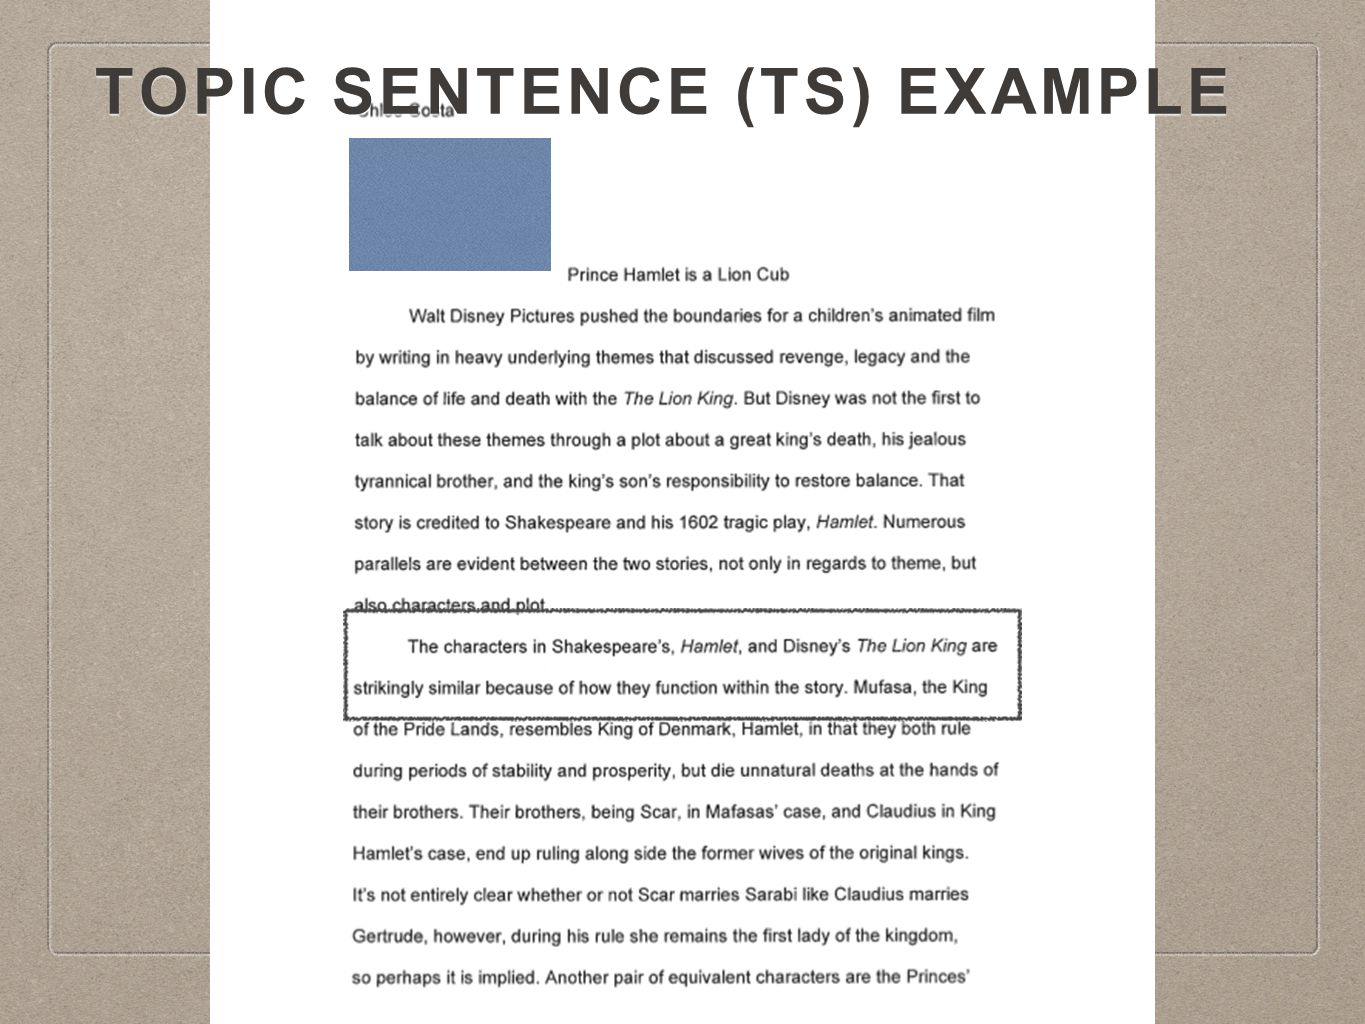 TOpic Sentence (TS) Example